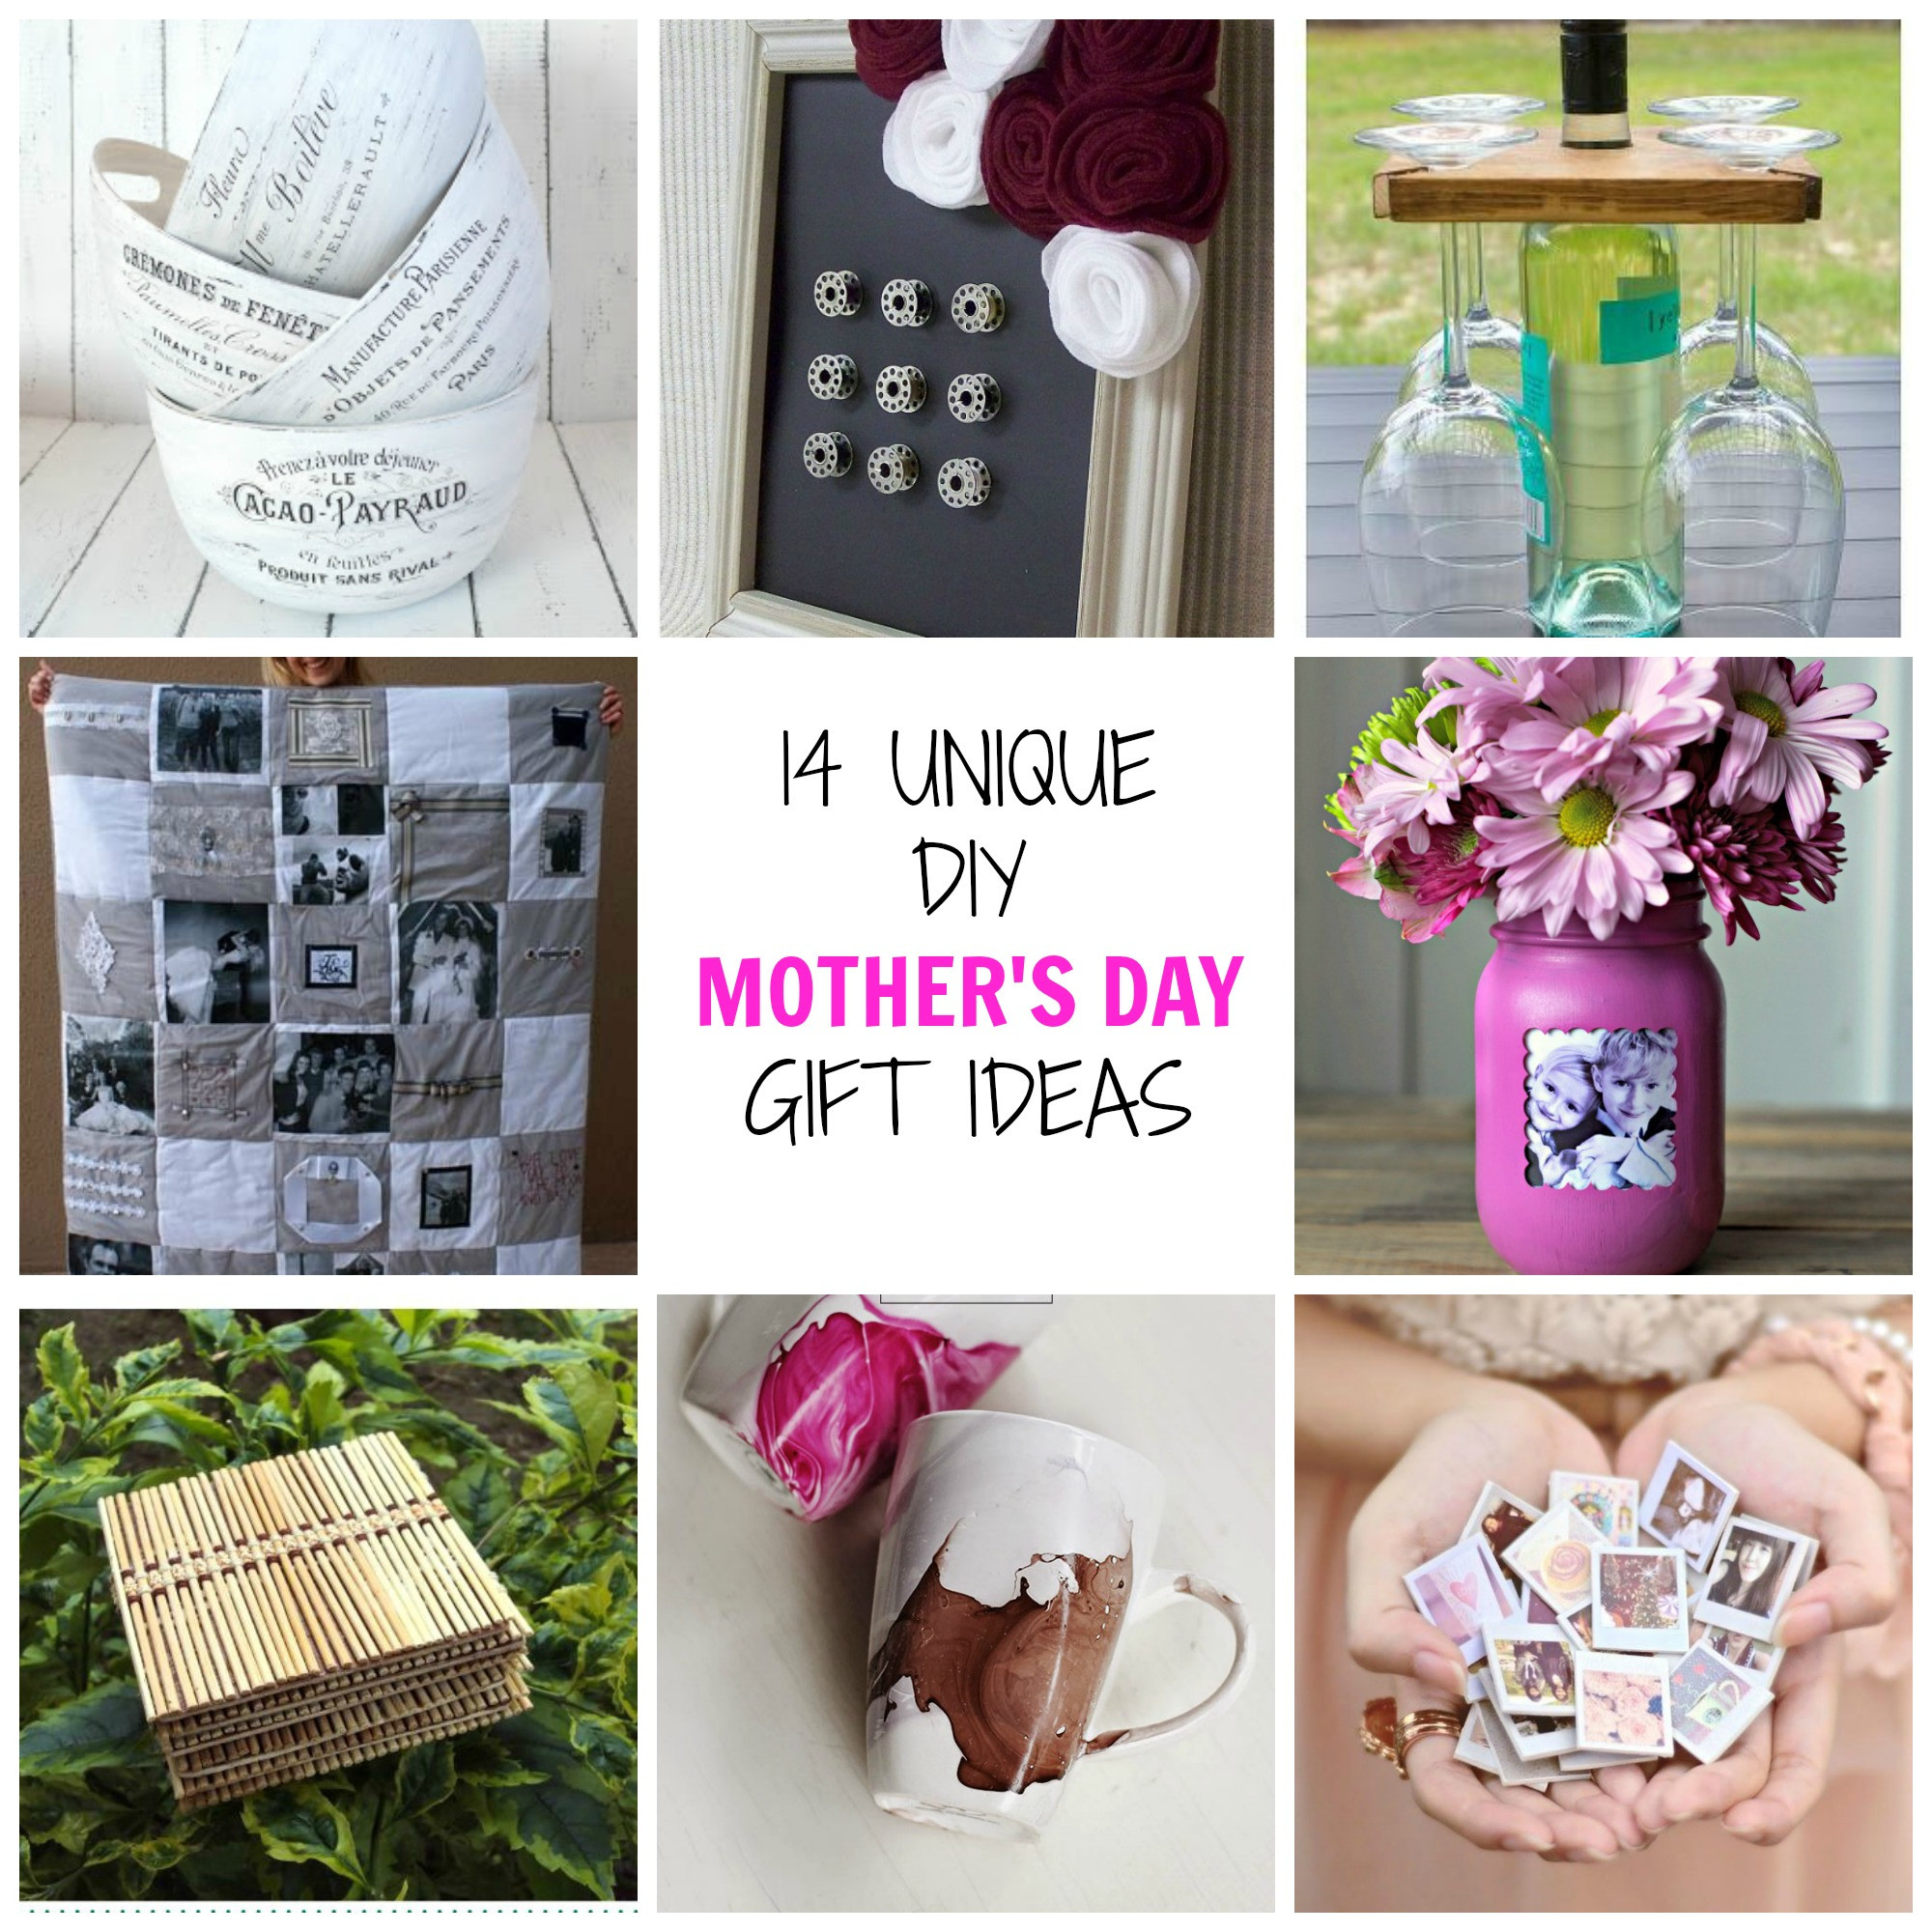 Best ideas about Mothers Day Unique Gift Ideas . Save or Pin 14 Unique DIY Mother s Day Gifts Simplify Create Inspire Now.